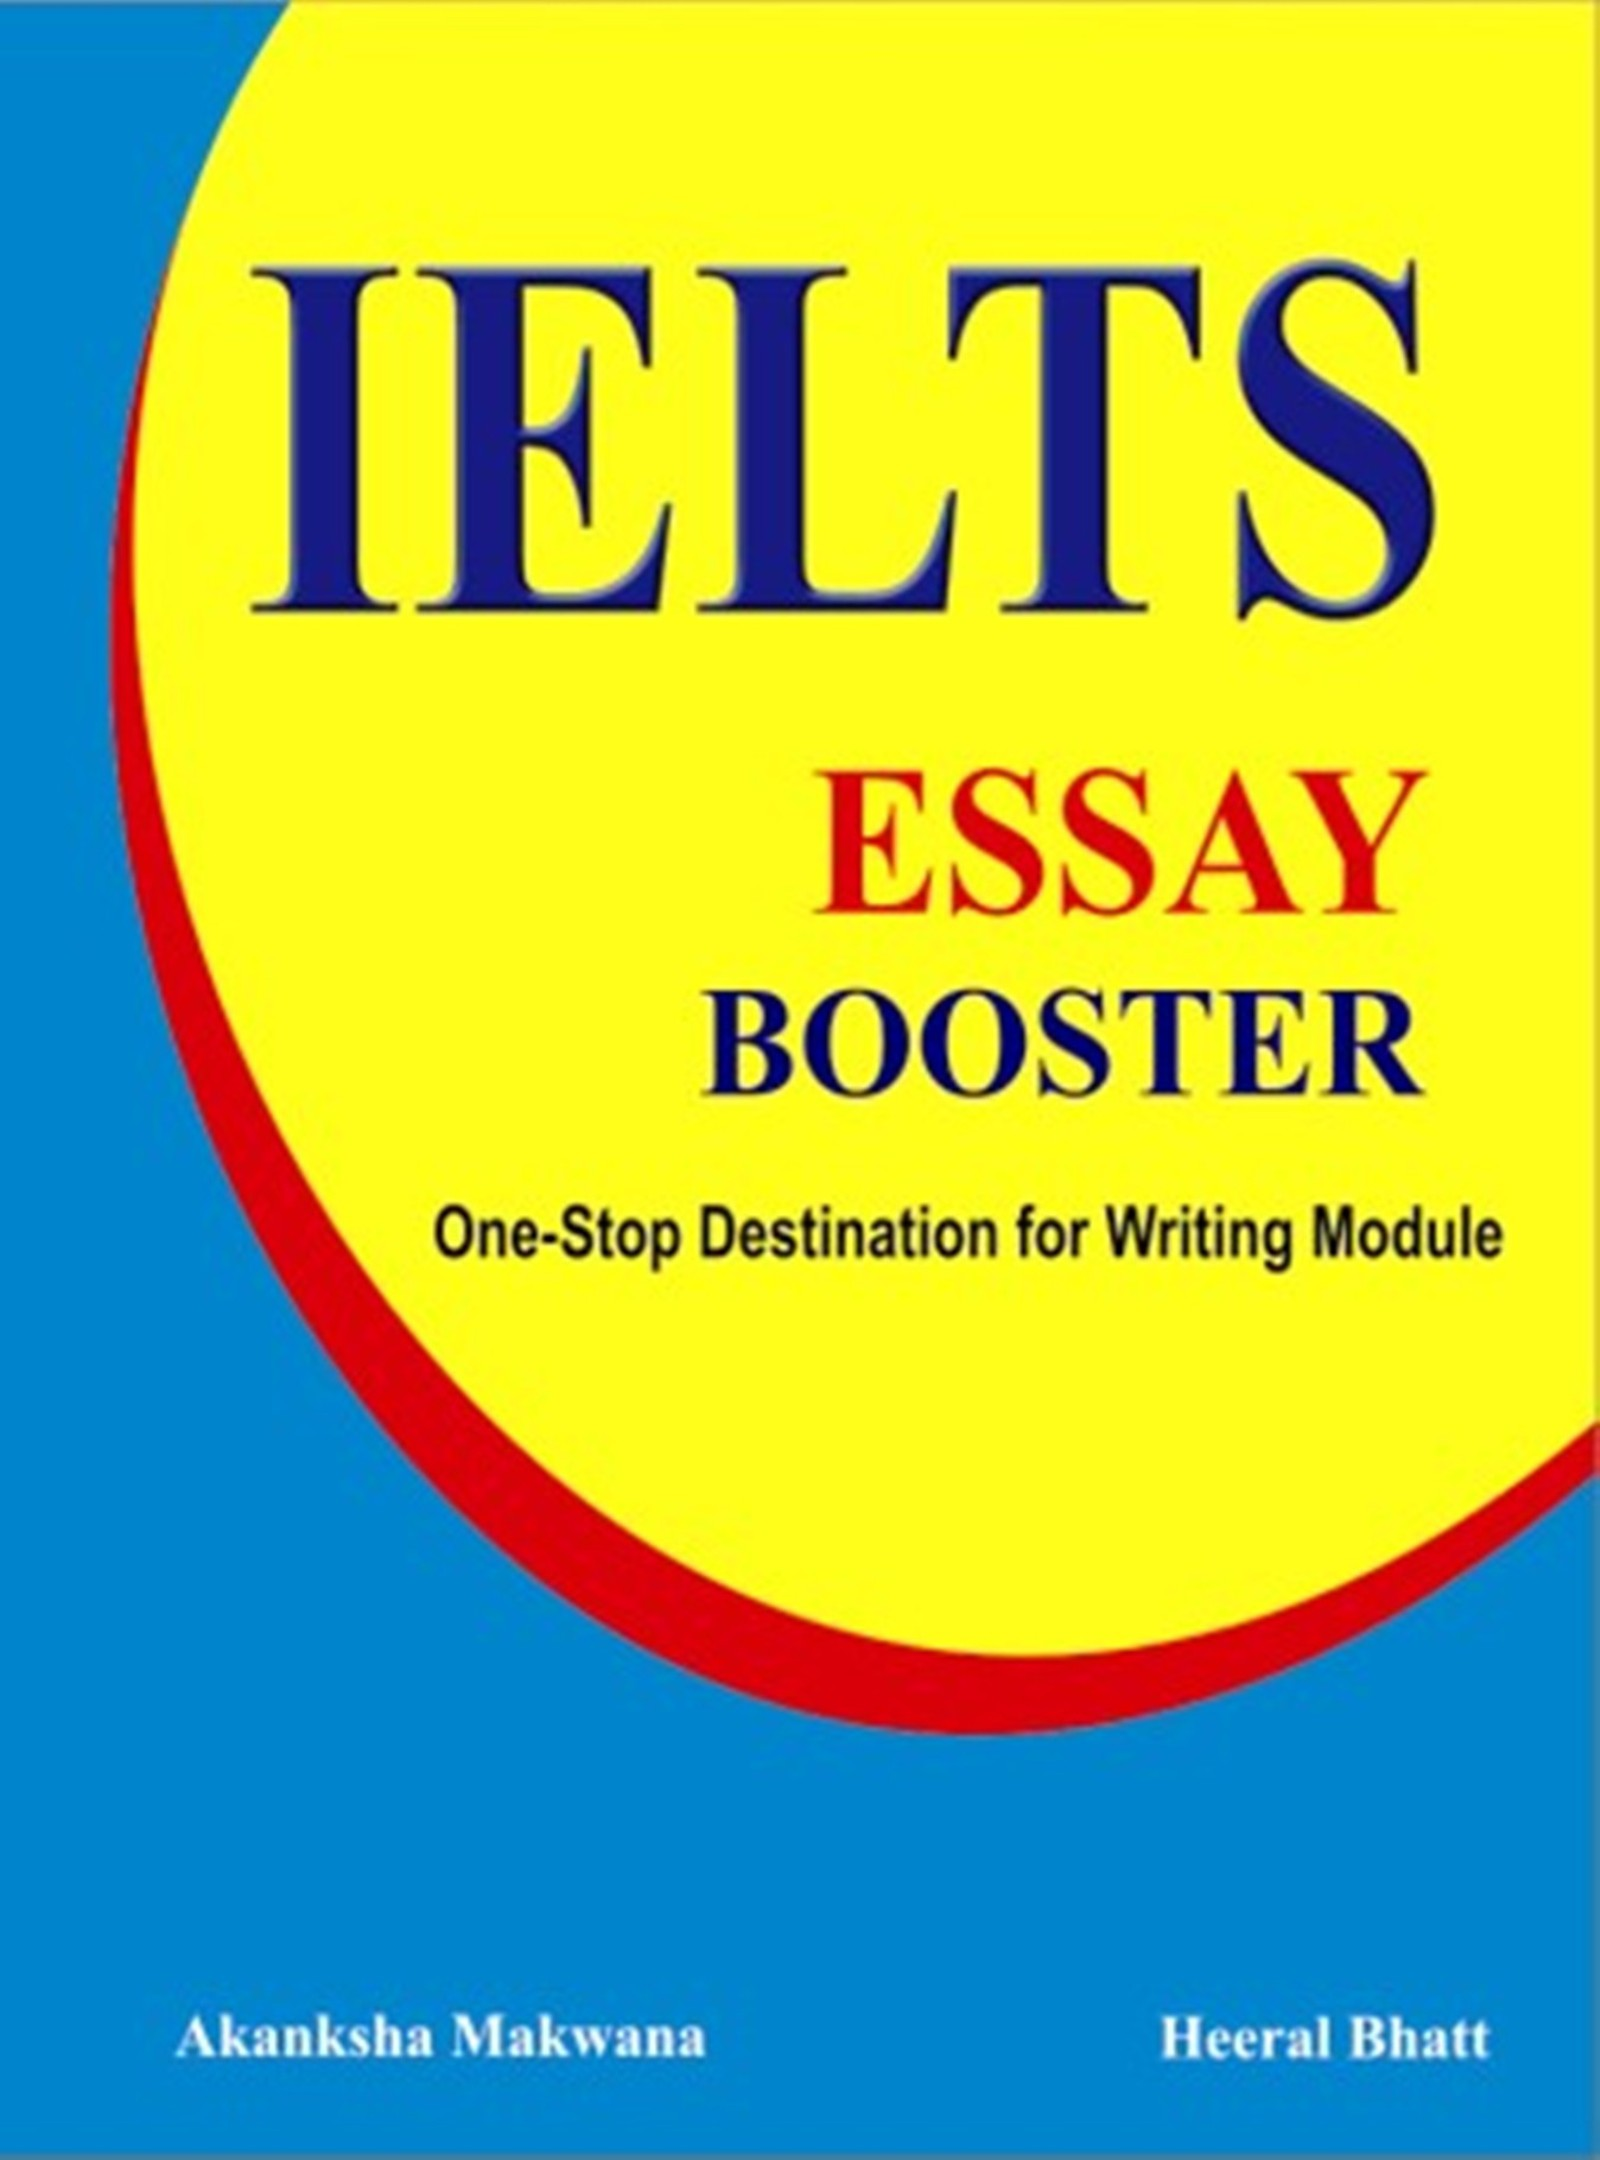 ielts essays pdf Download ielts ebooks,free ielts ebooks,ielts writing,ielts reading,ielts speaking,ielts speaking,ielts score,cambrige ielts ebooks,ielts academic,ielts reading techniques download free, all ielts ebooks how_to_write_great_essayspdf (476k.